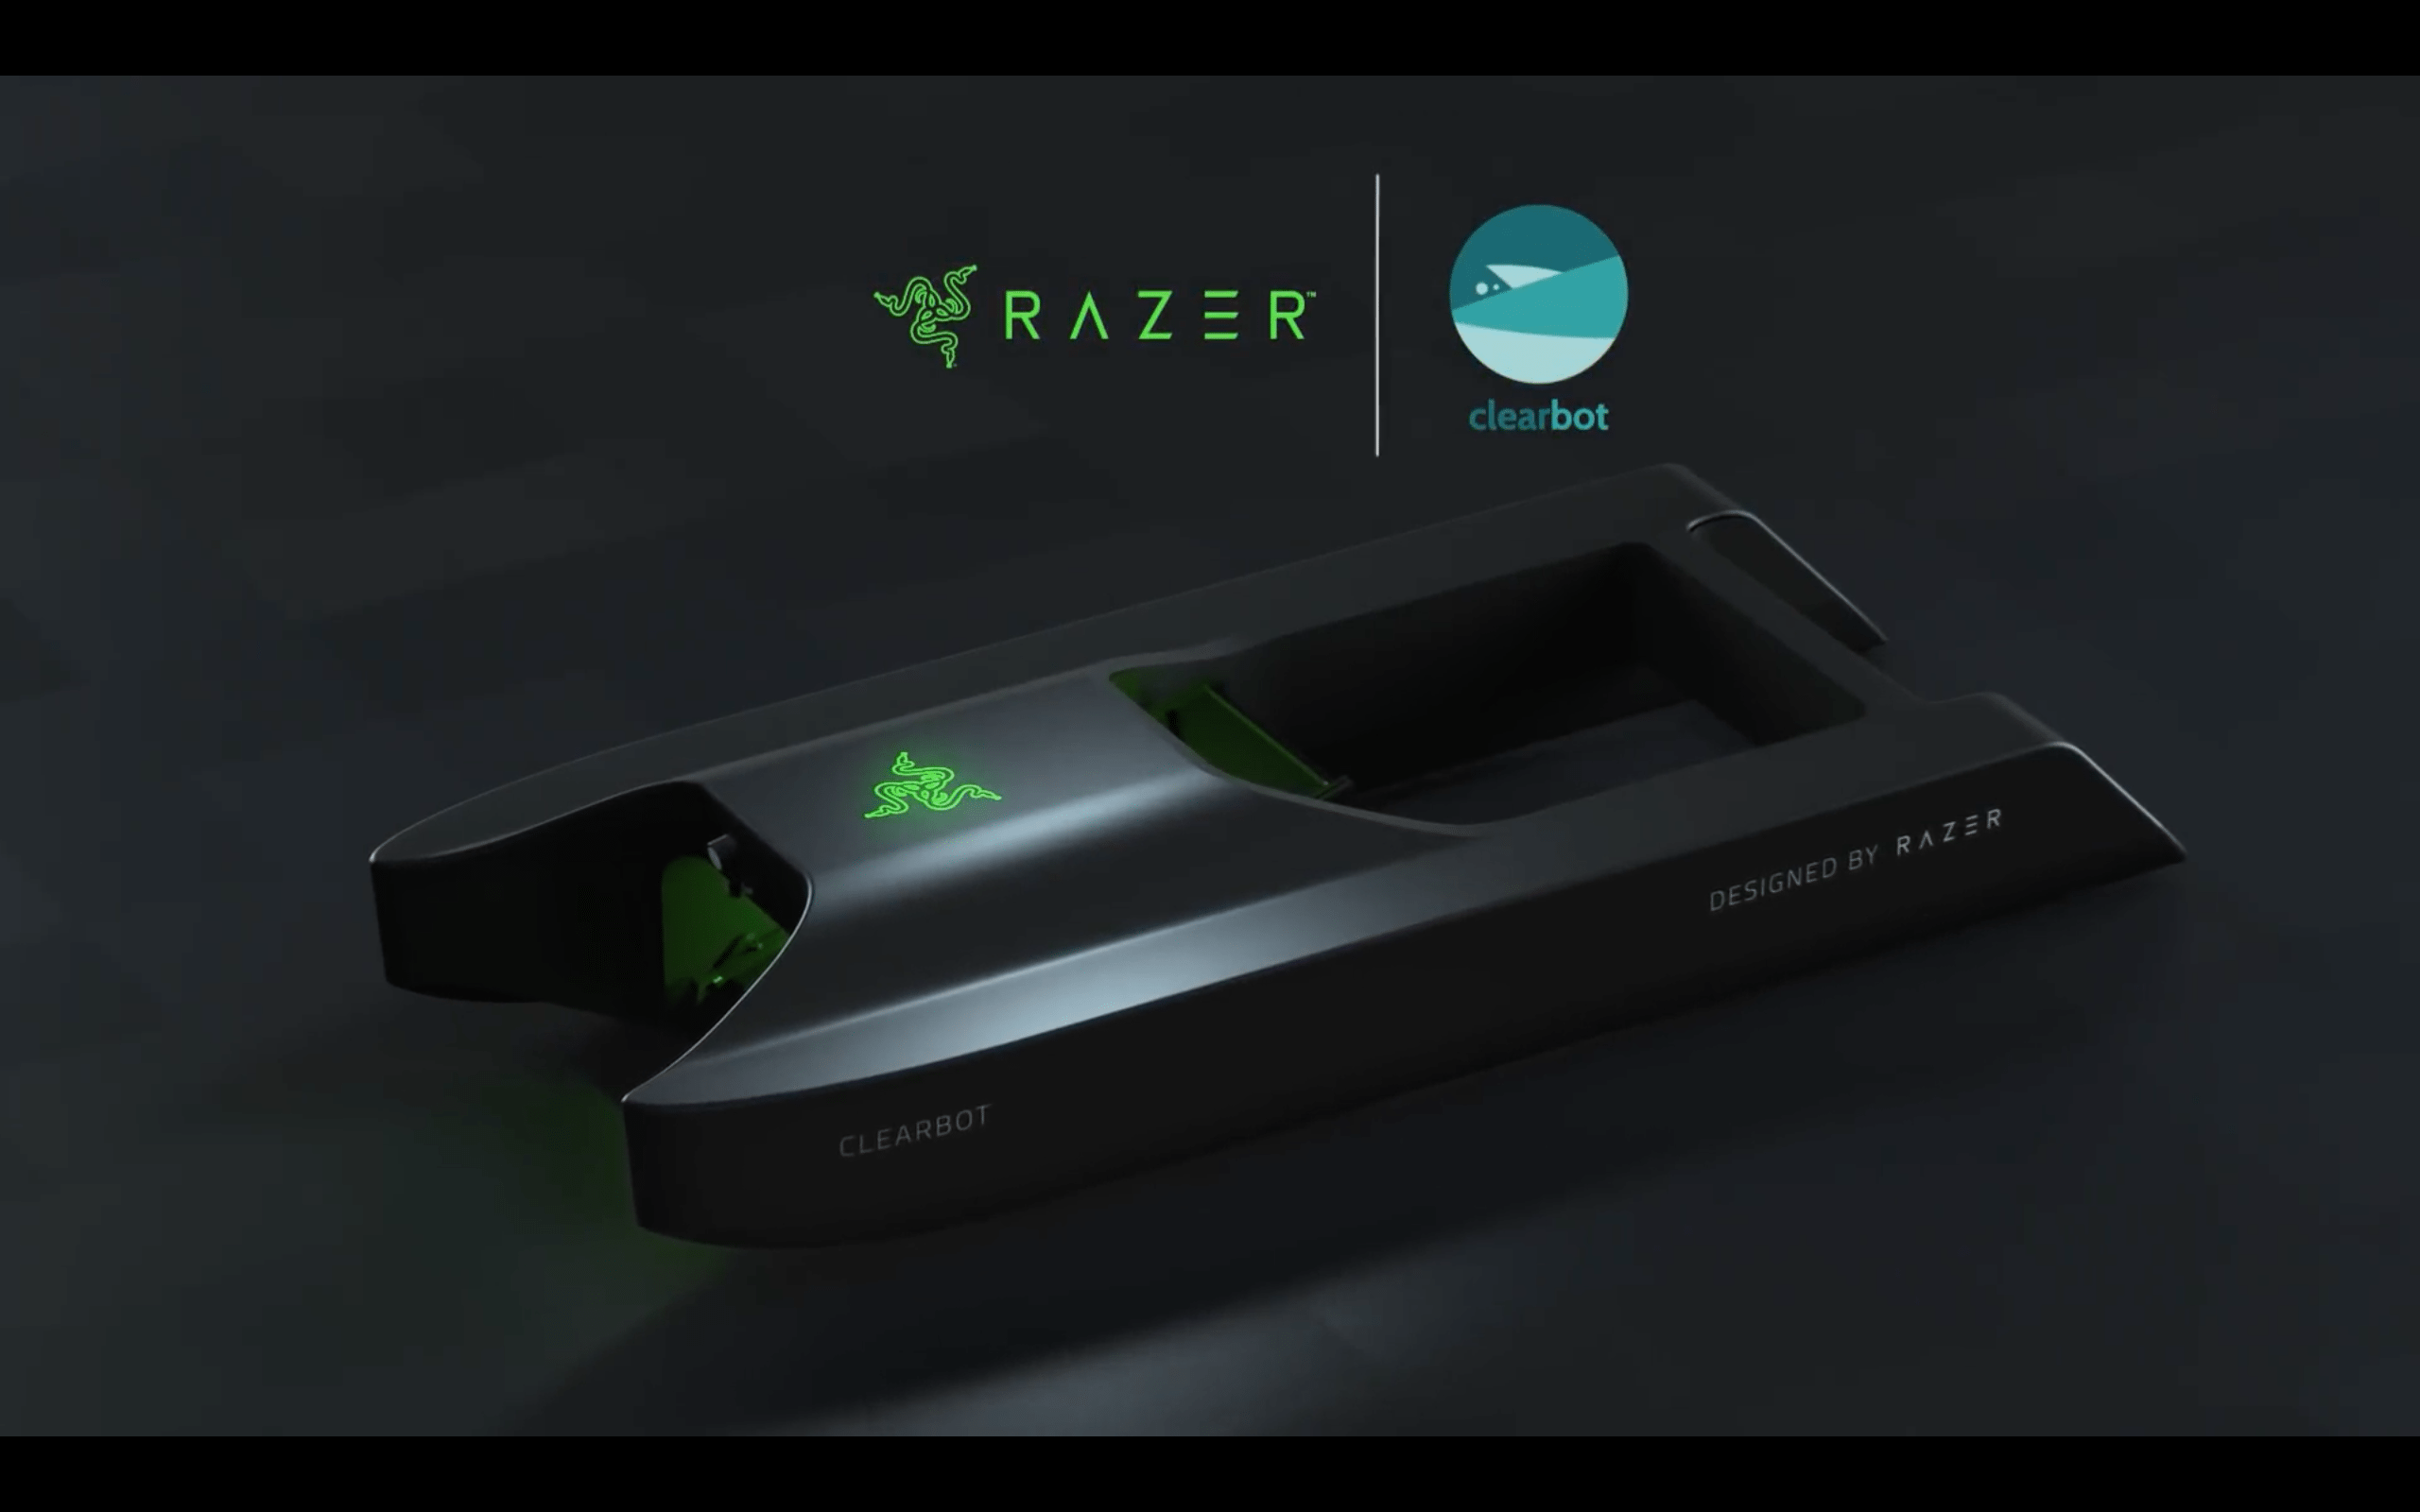 【Razer x Clearbot】 Using an AI robot to clean up ocean waste